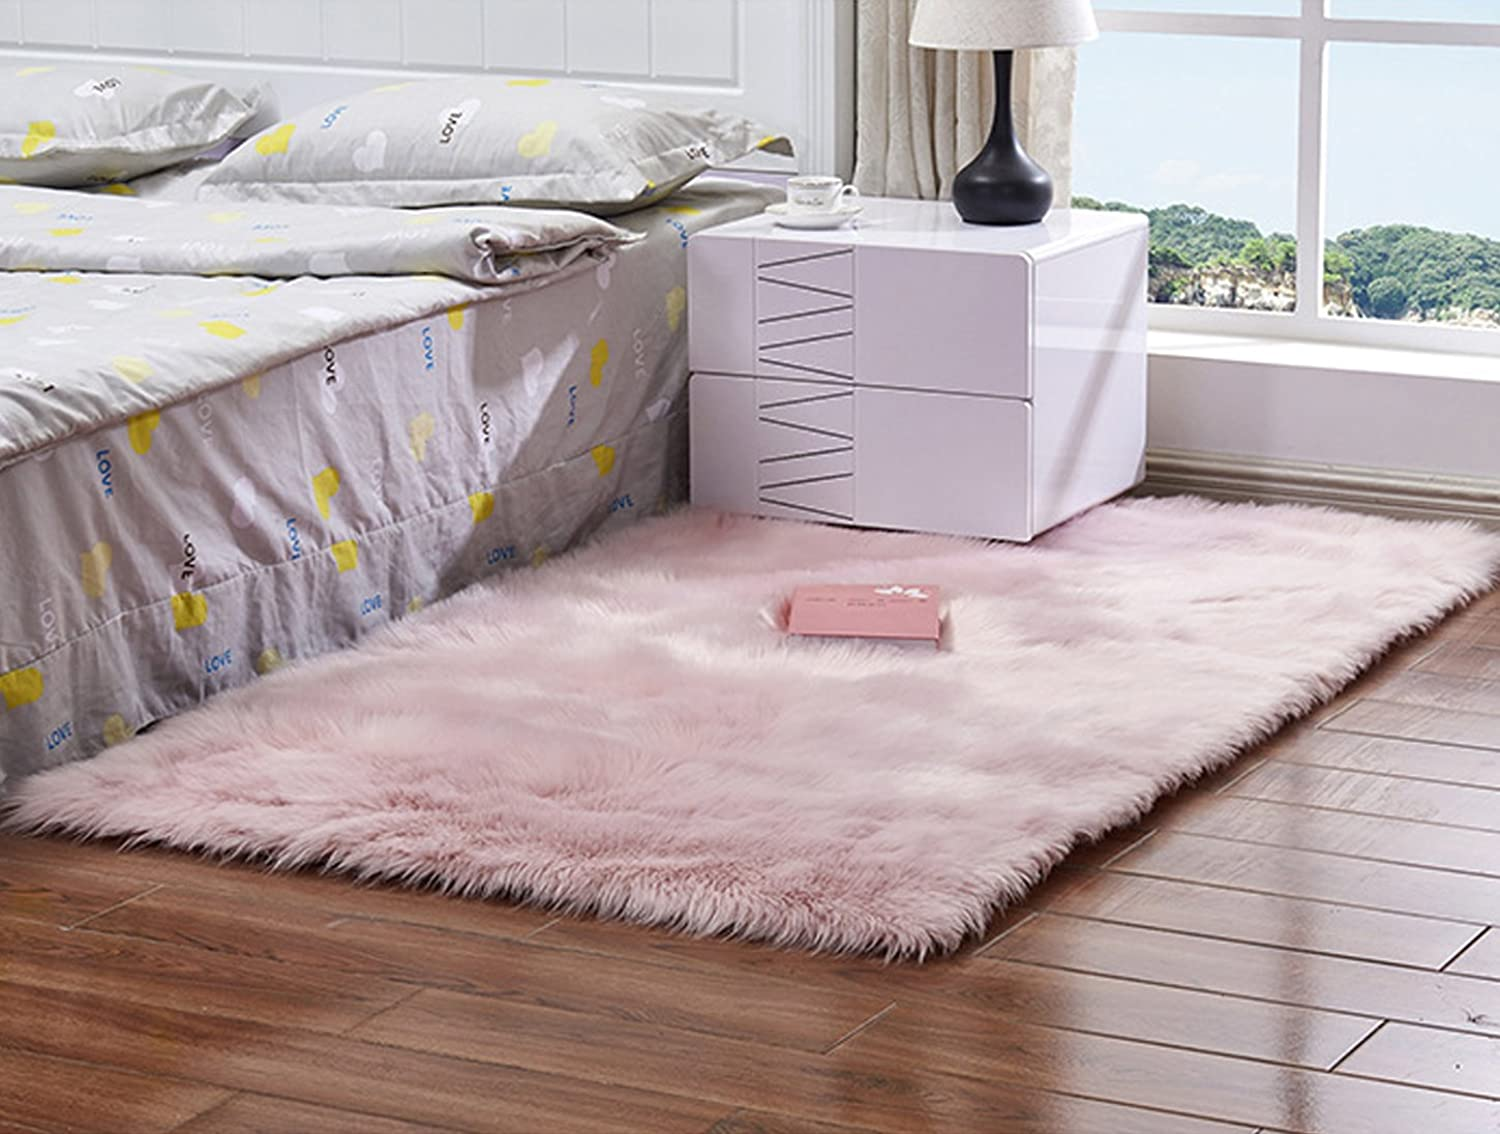 Meng Ge Soft Faux Sheepskin Chair Cover Seat Shaggy Area Rugs Fluffy Fuax Fur Shag Rug Carpet 3x5ft,Light Pink